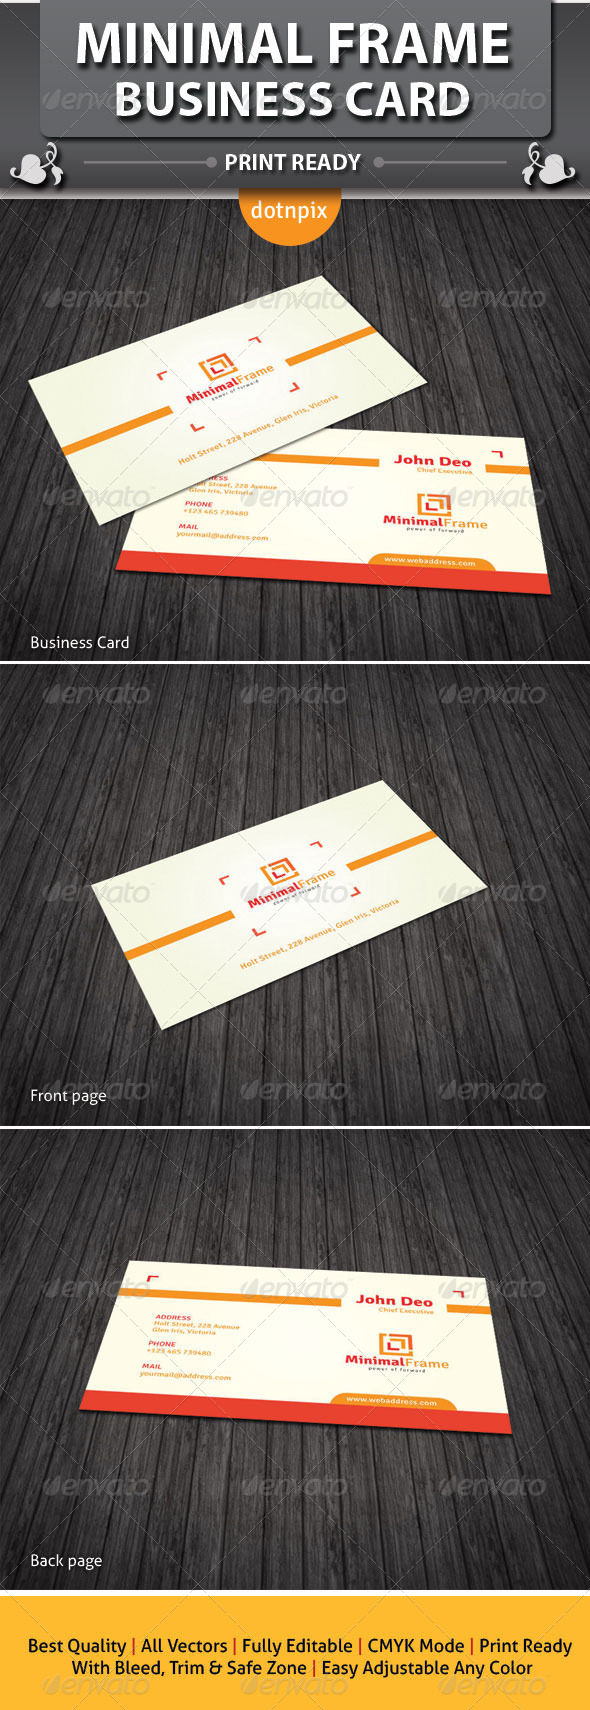 GraphicRiver Minimal Frame Business Card 3763179